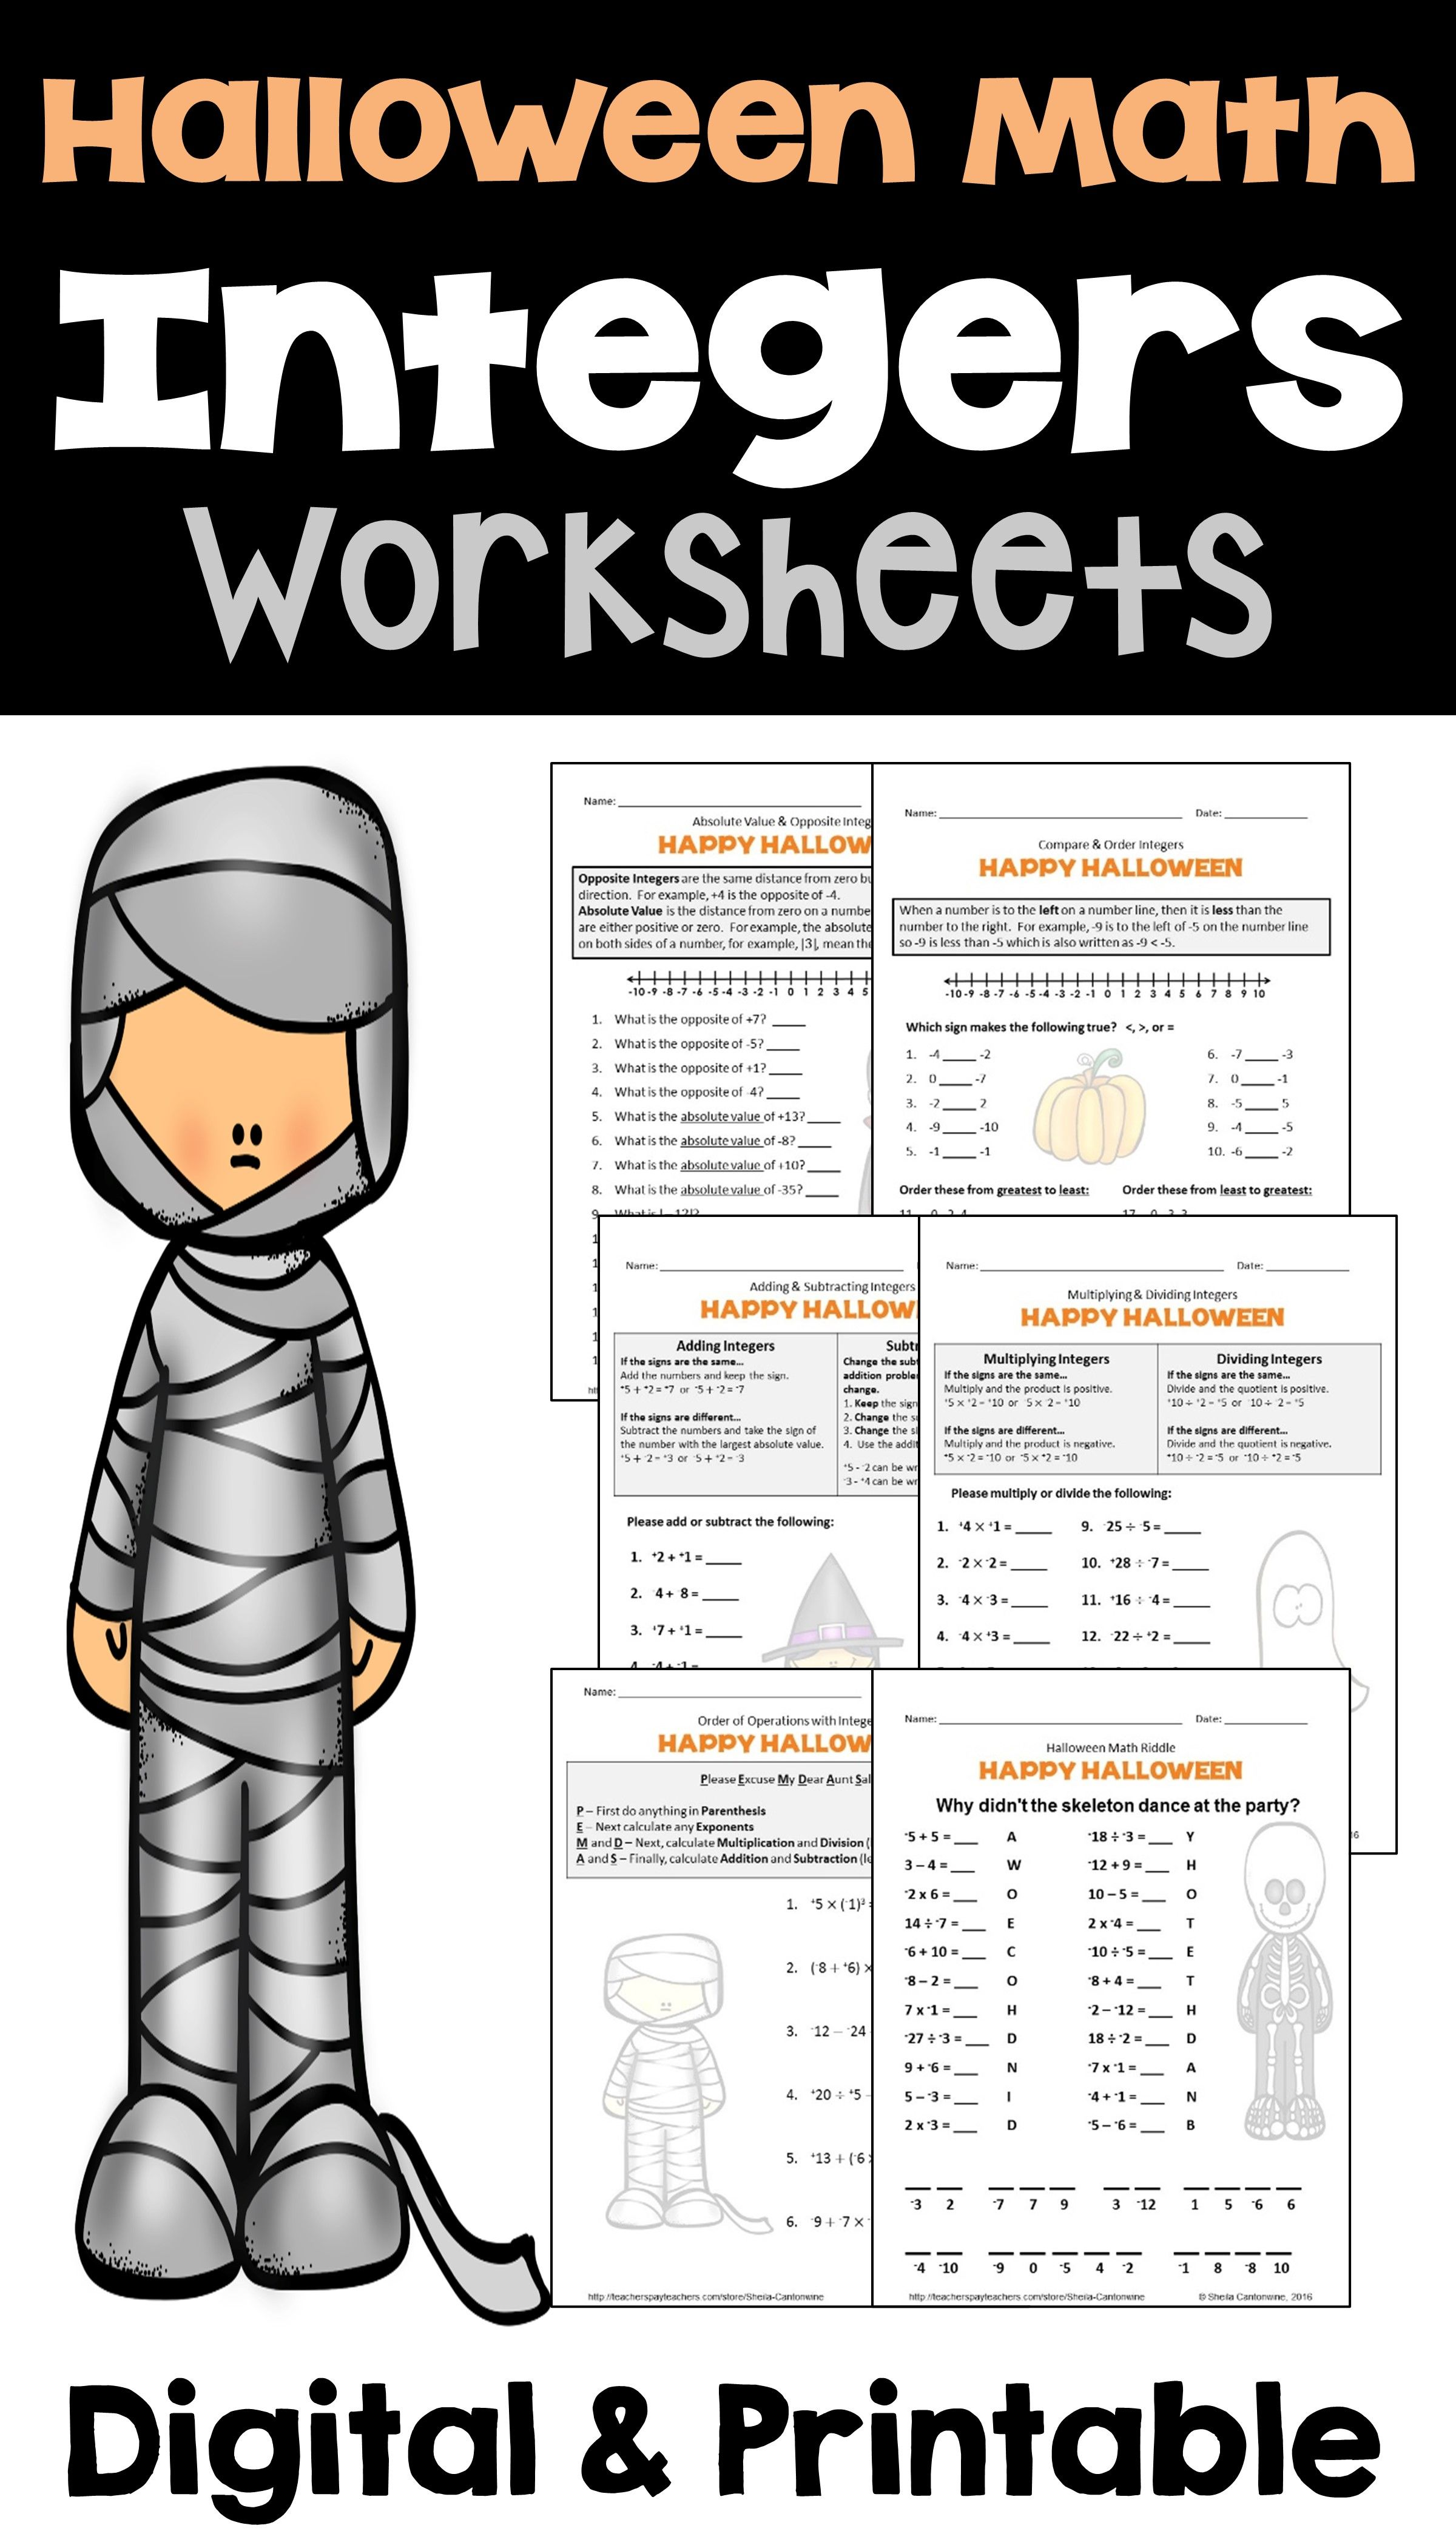 Halloween Integers Worksheets With Digital And Printable